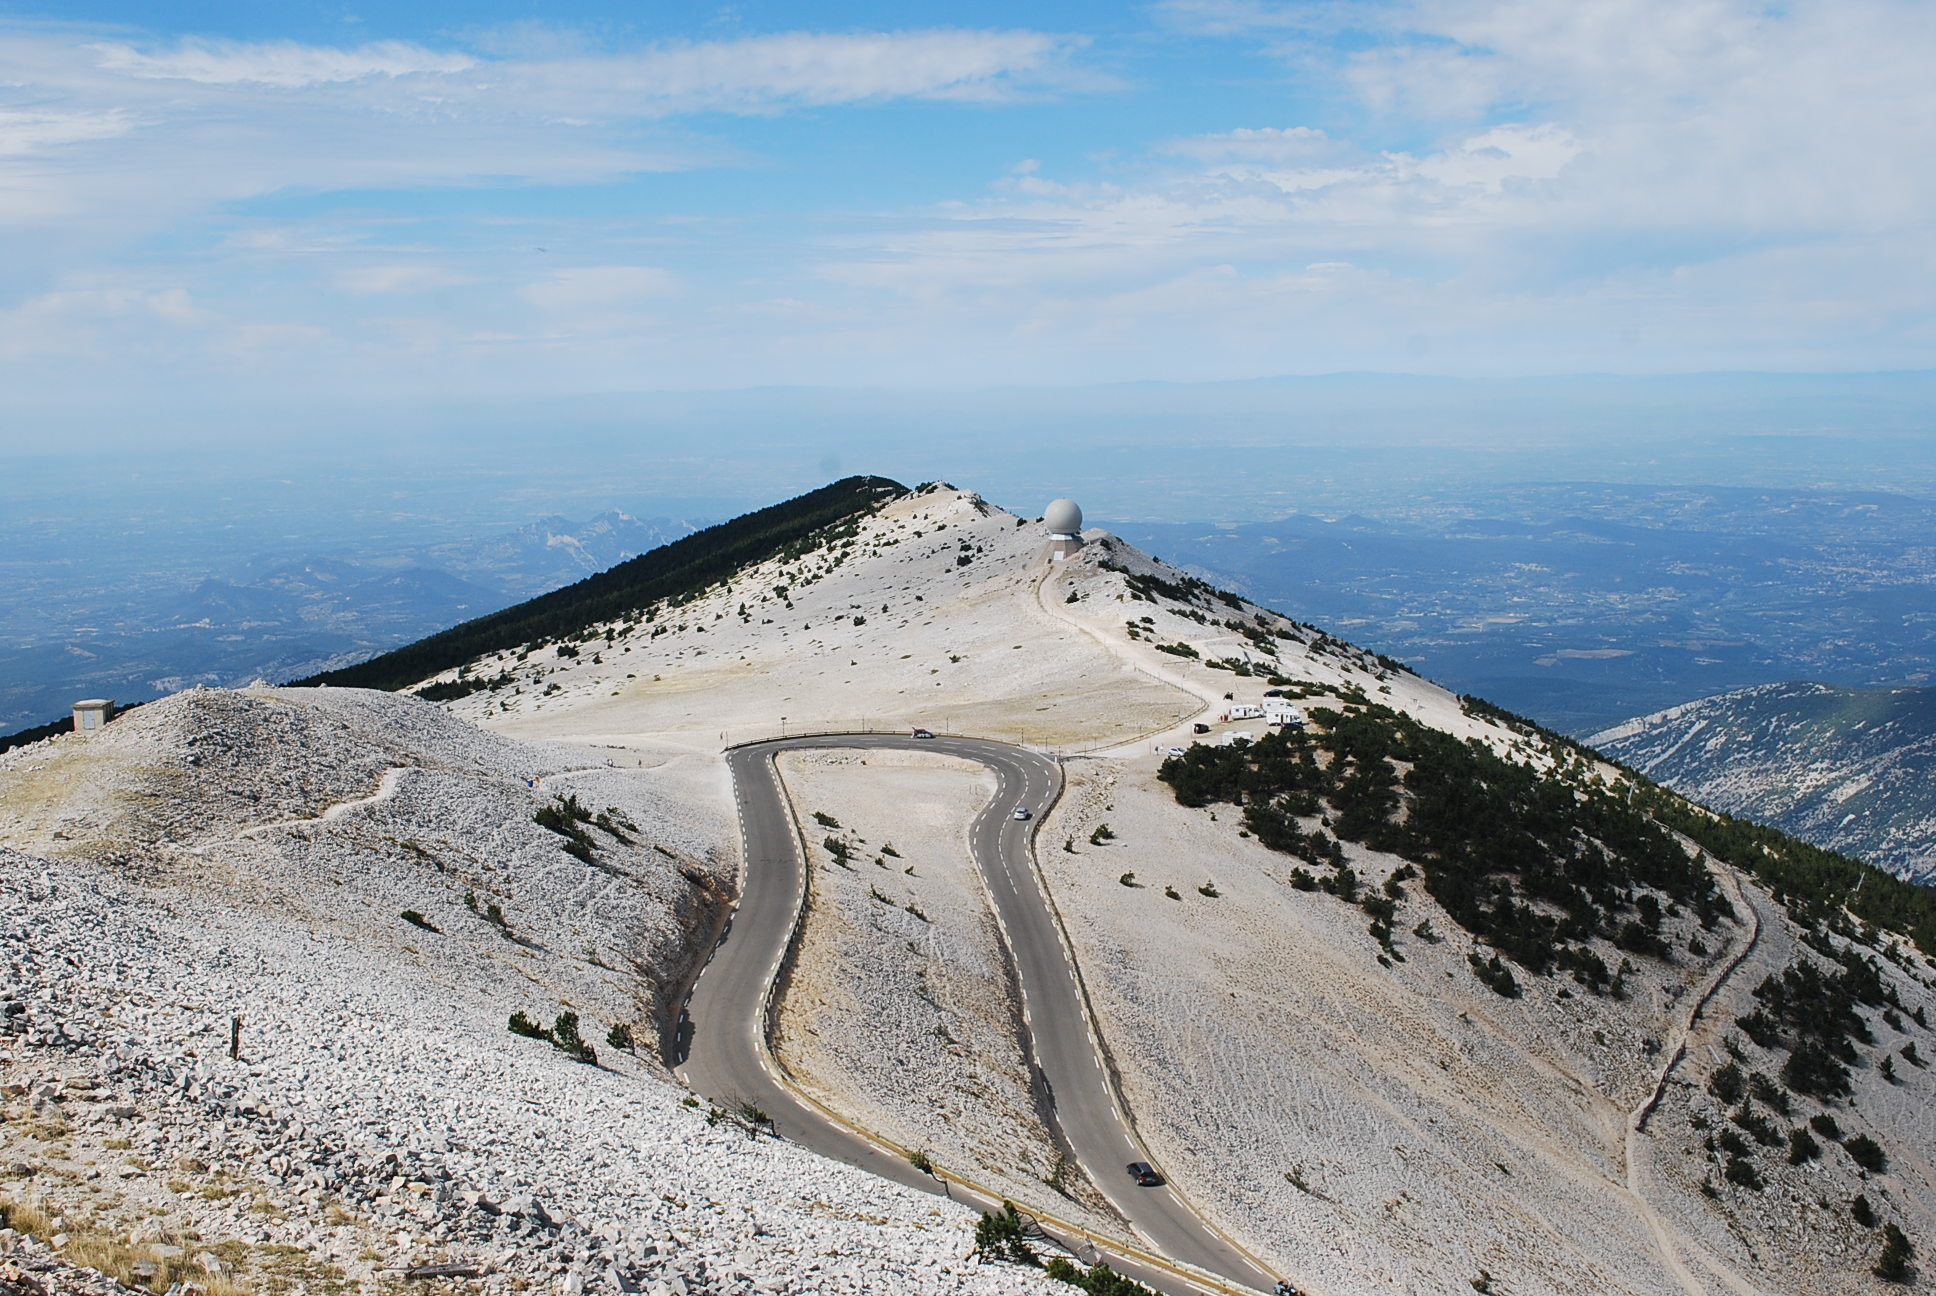 The road toward the summit of Ventoux.